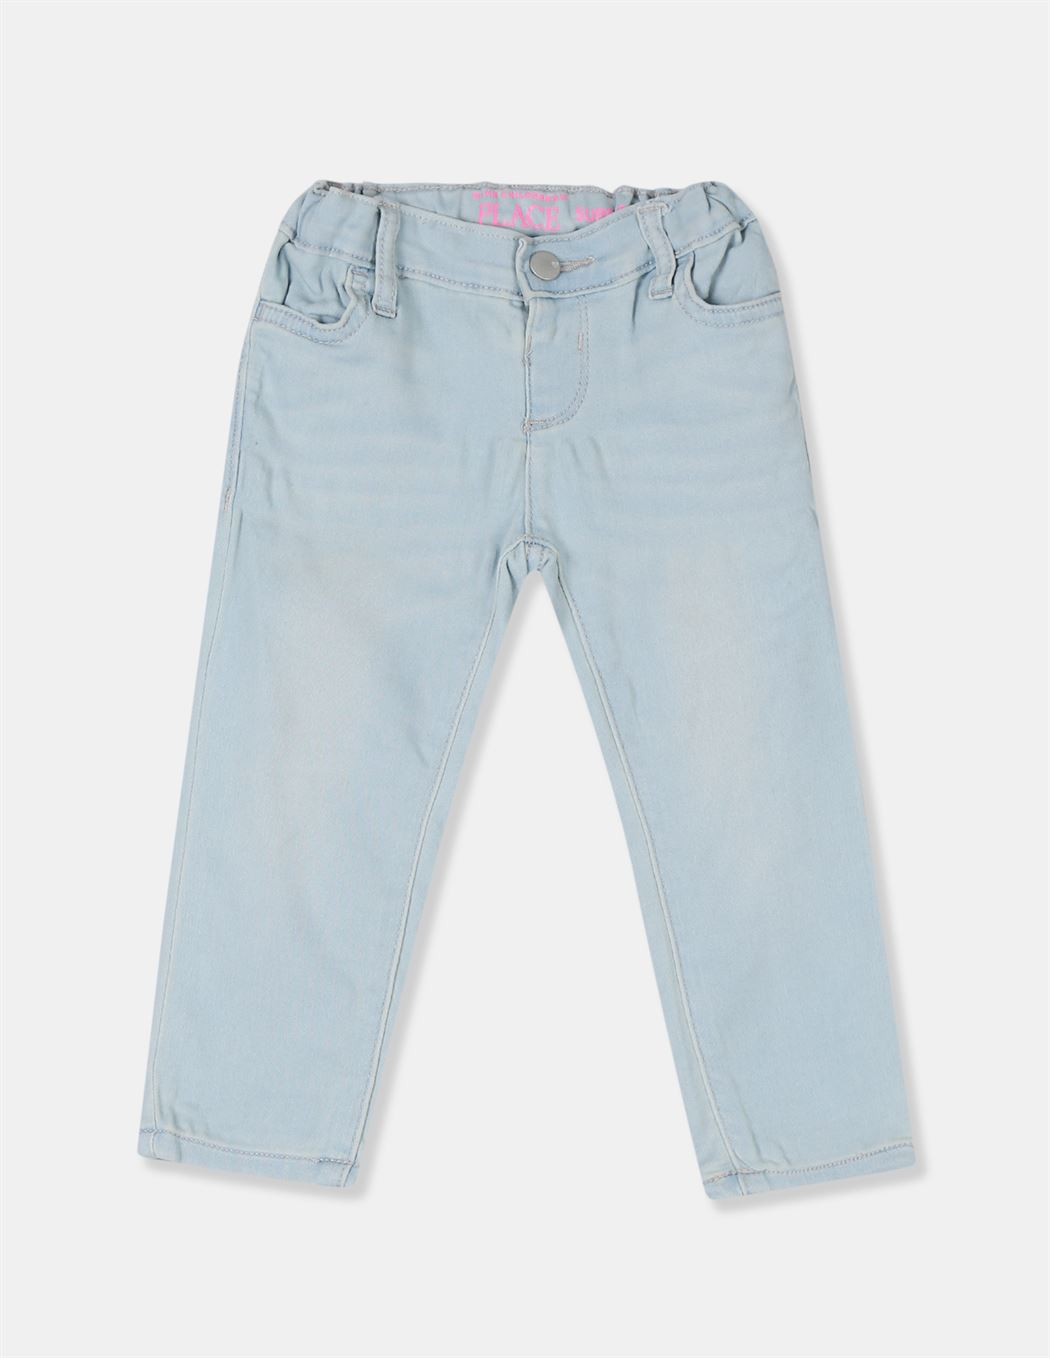 The Children's Place Girls Blue Super Skinny Fit Faded Jeans